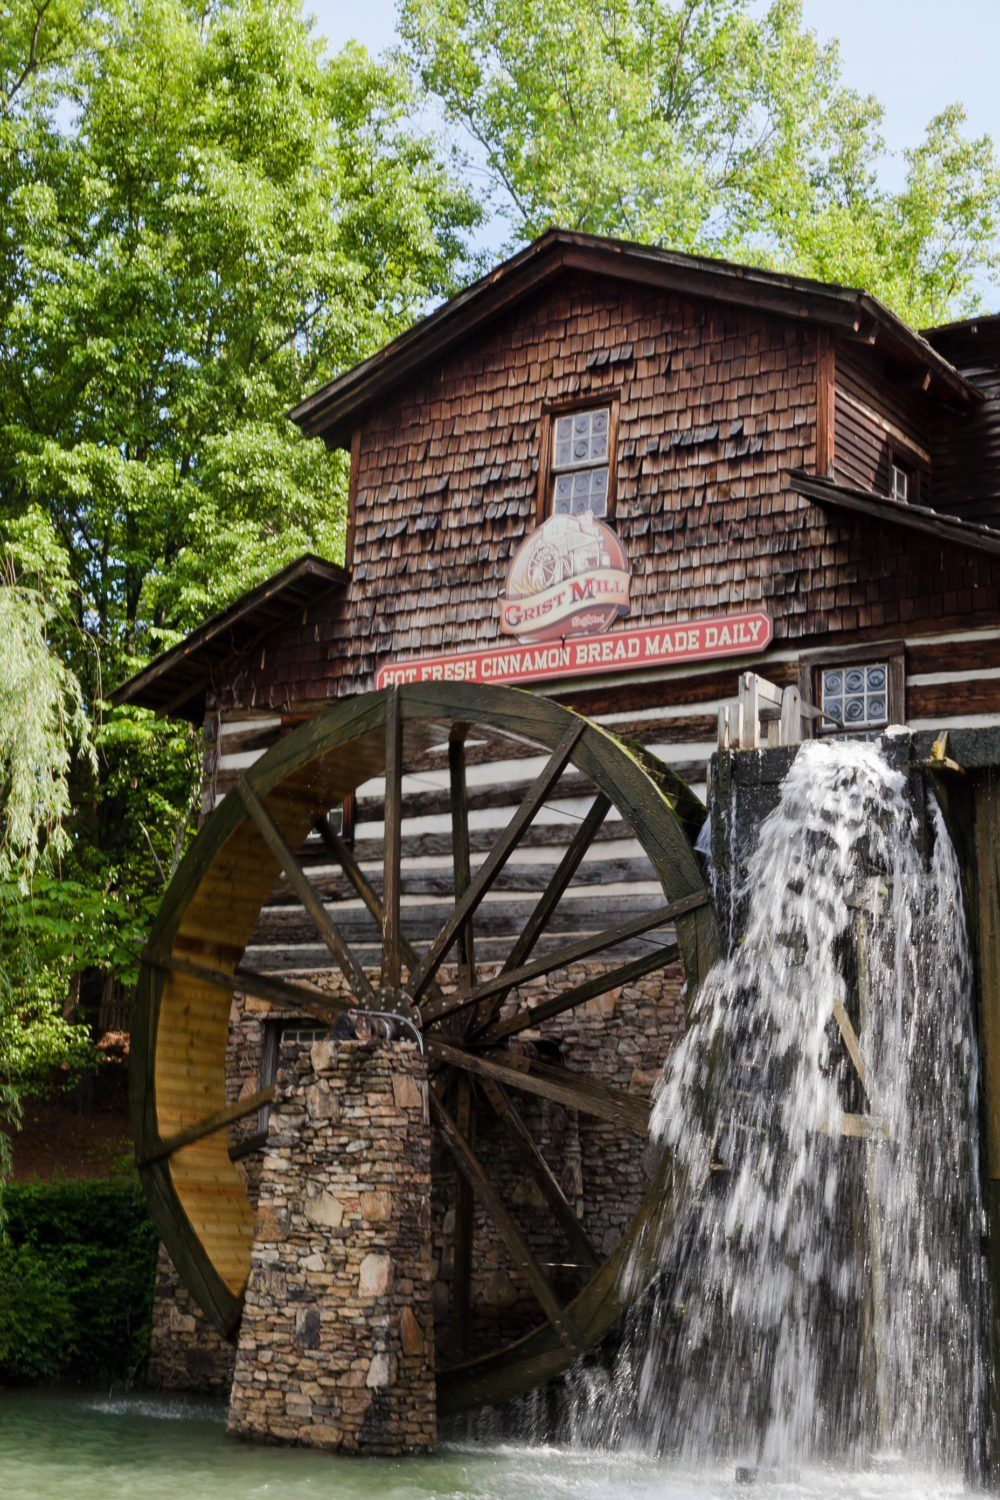 A Day at Dollywood and the new Wildwood Grove | VIDEO with Southern Living and Tabitha Blue of Fresh Mommy Blog | A Day at Dollywood and the new Wildwood Grove | VIDEO with Southern Living by popular Florida travel blog, Fresh Mommy Blog: image of Dollywood Grist Mill.